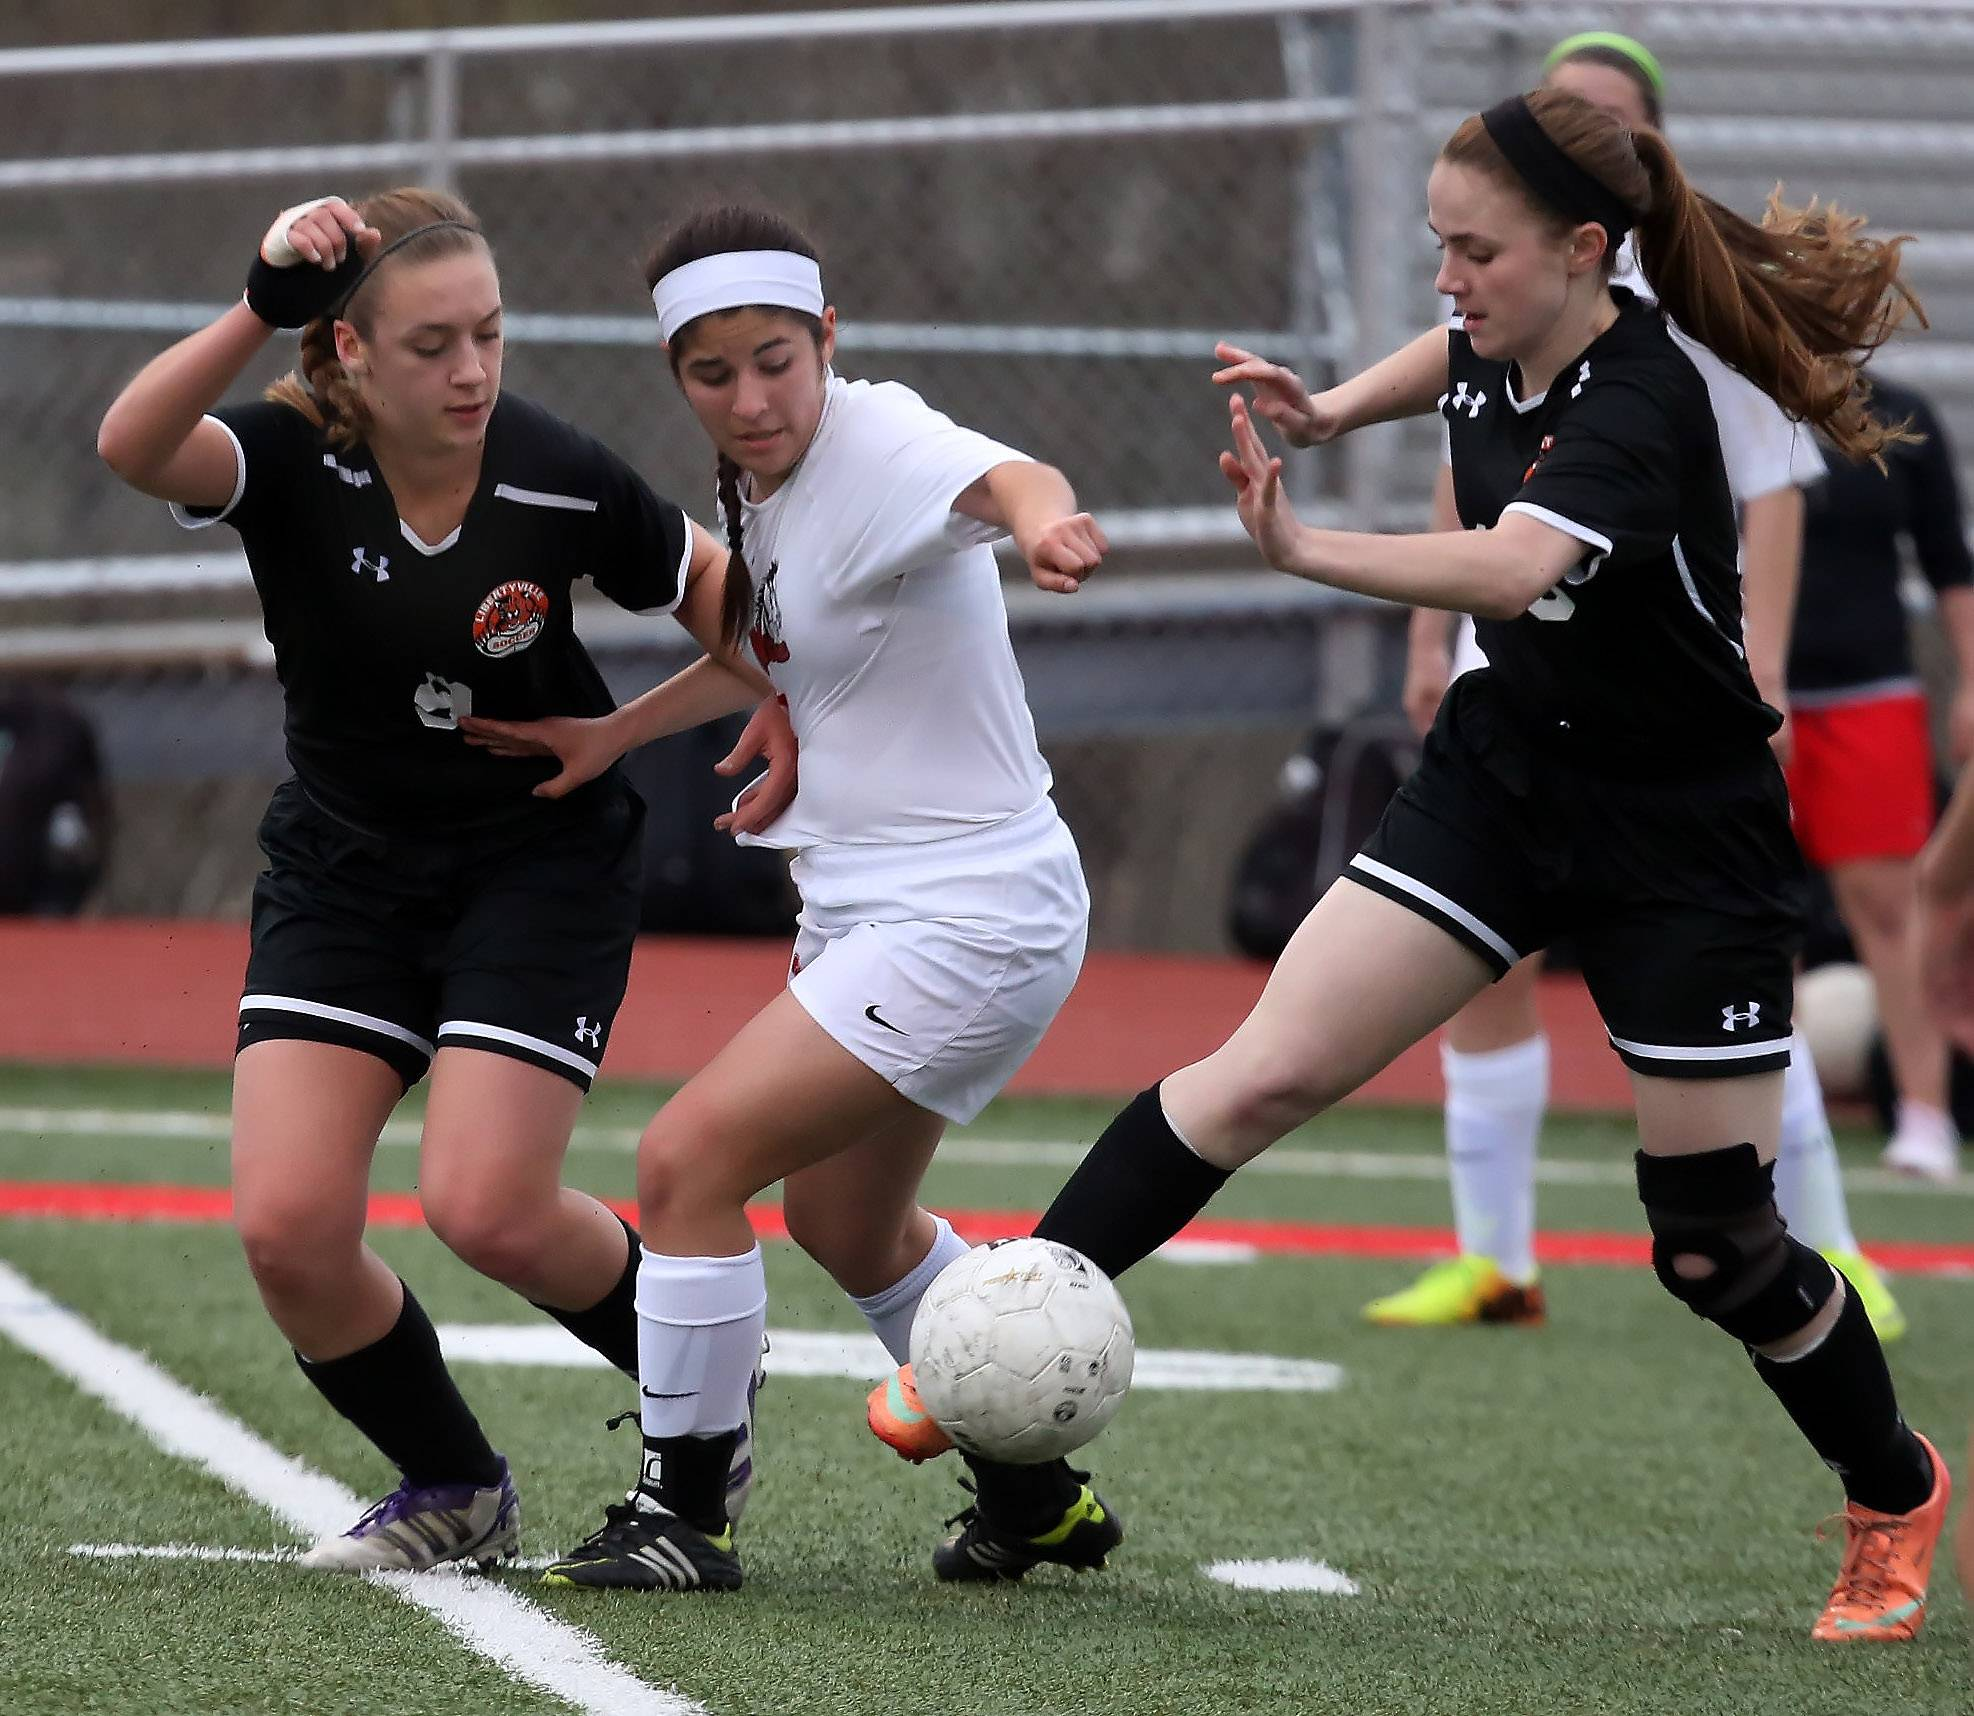 Libertyville defender Abbey Peters, left, pressures Mundelein midfielder Adriana Salse with help from midfielder Danielle Pacholski on Tuesday at Mundelein.